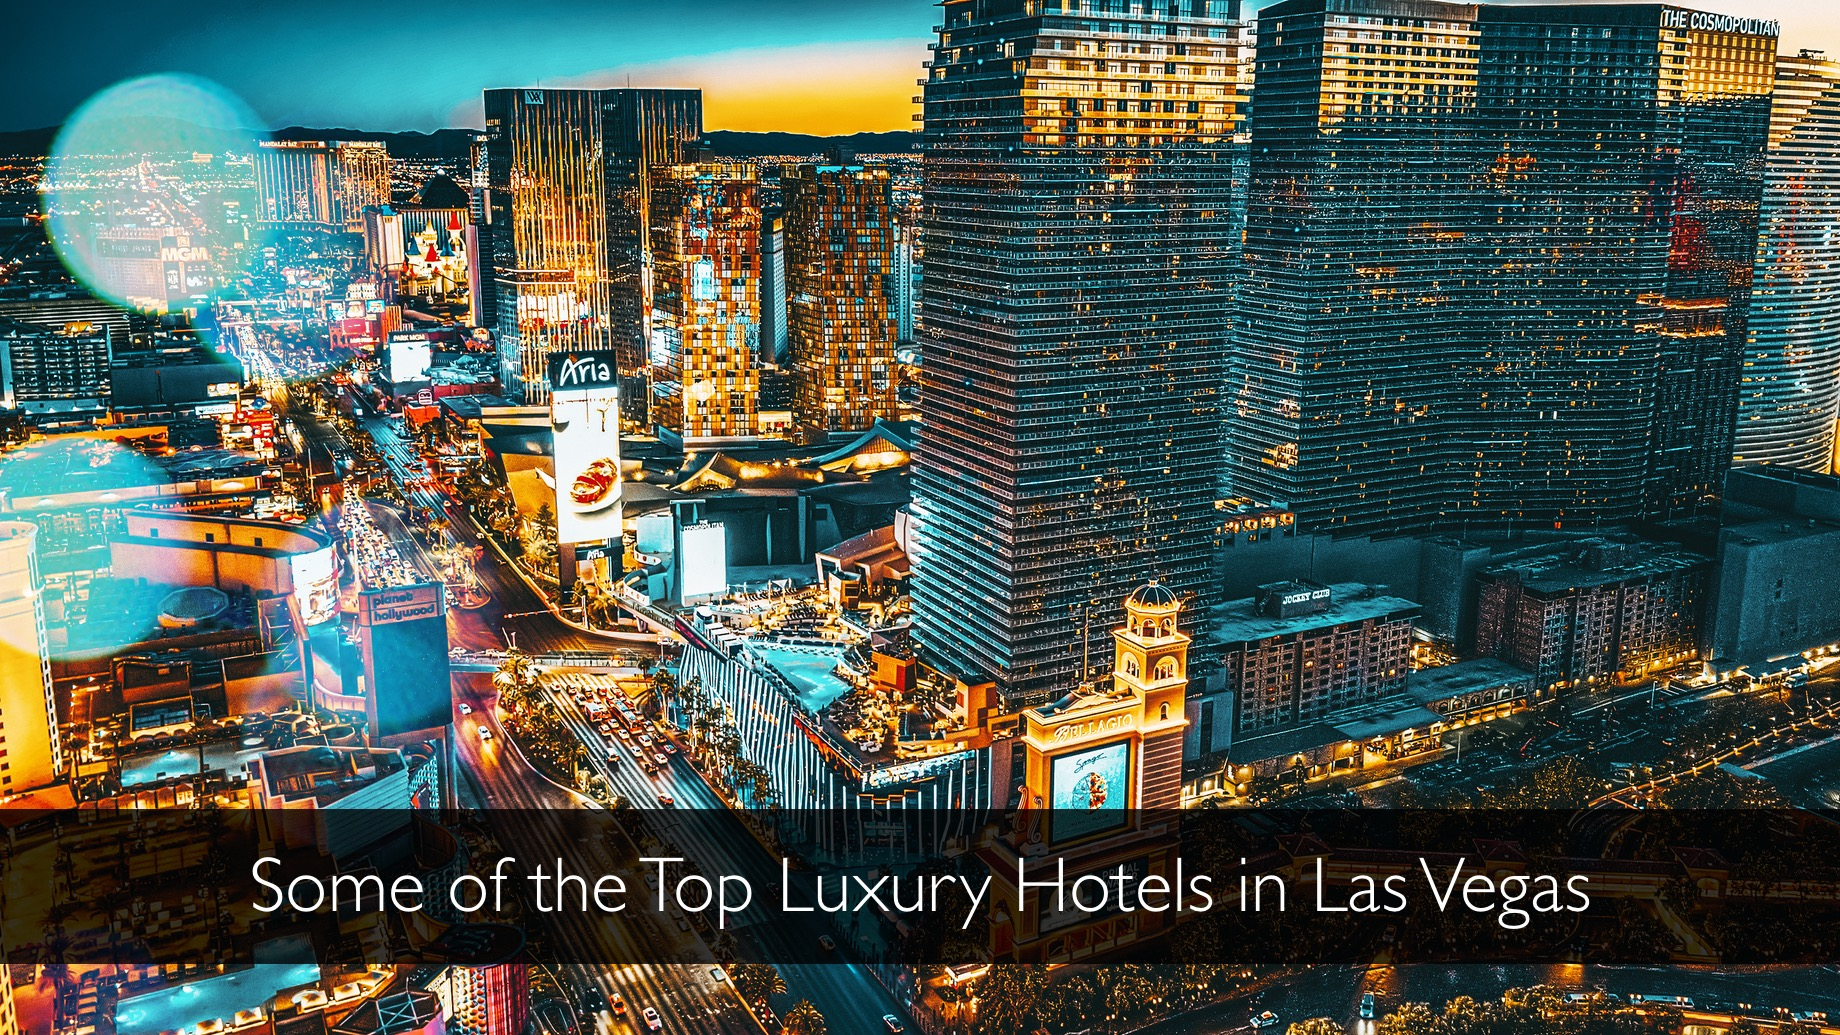 Some of the Top Luxury Hotels in Las Vegas